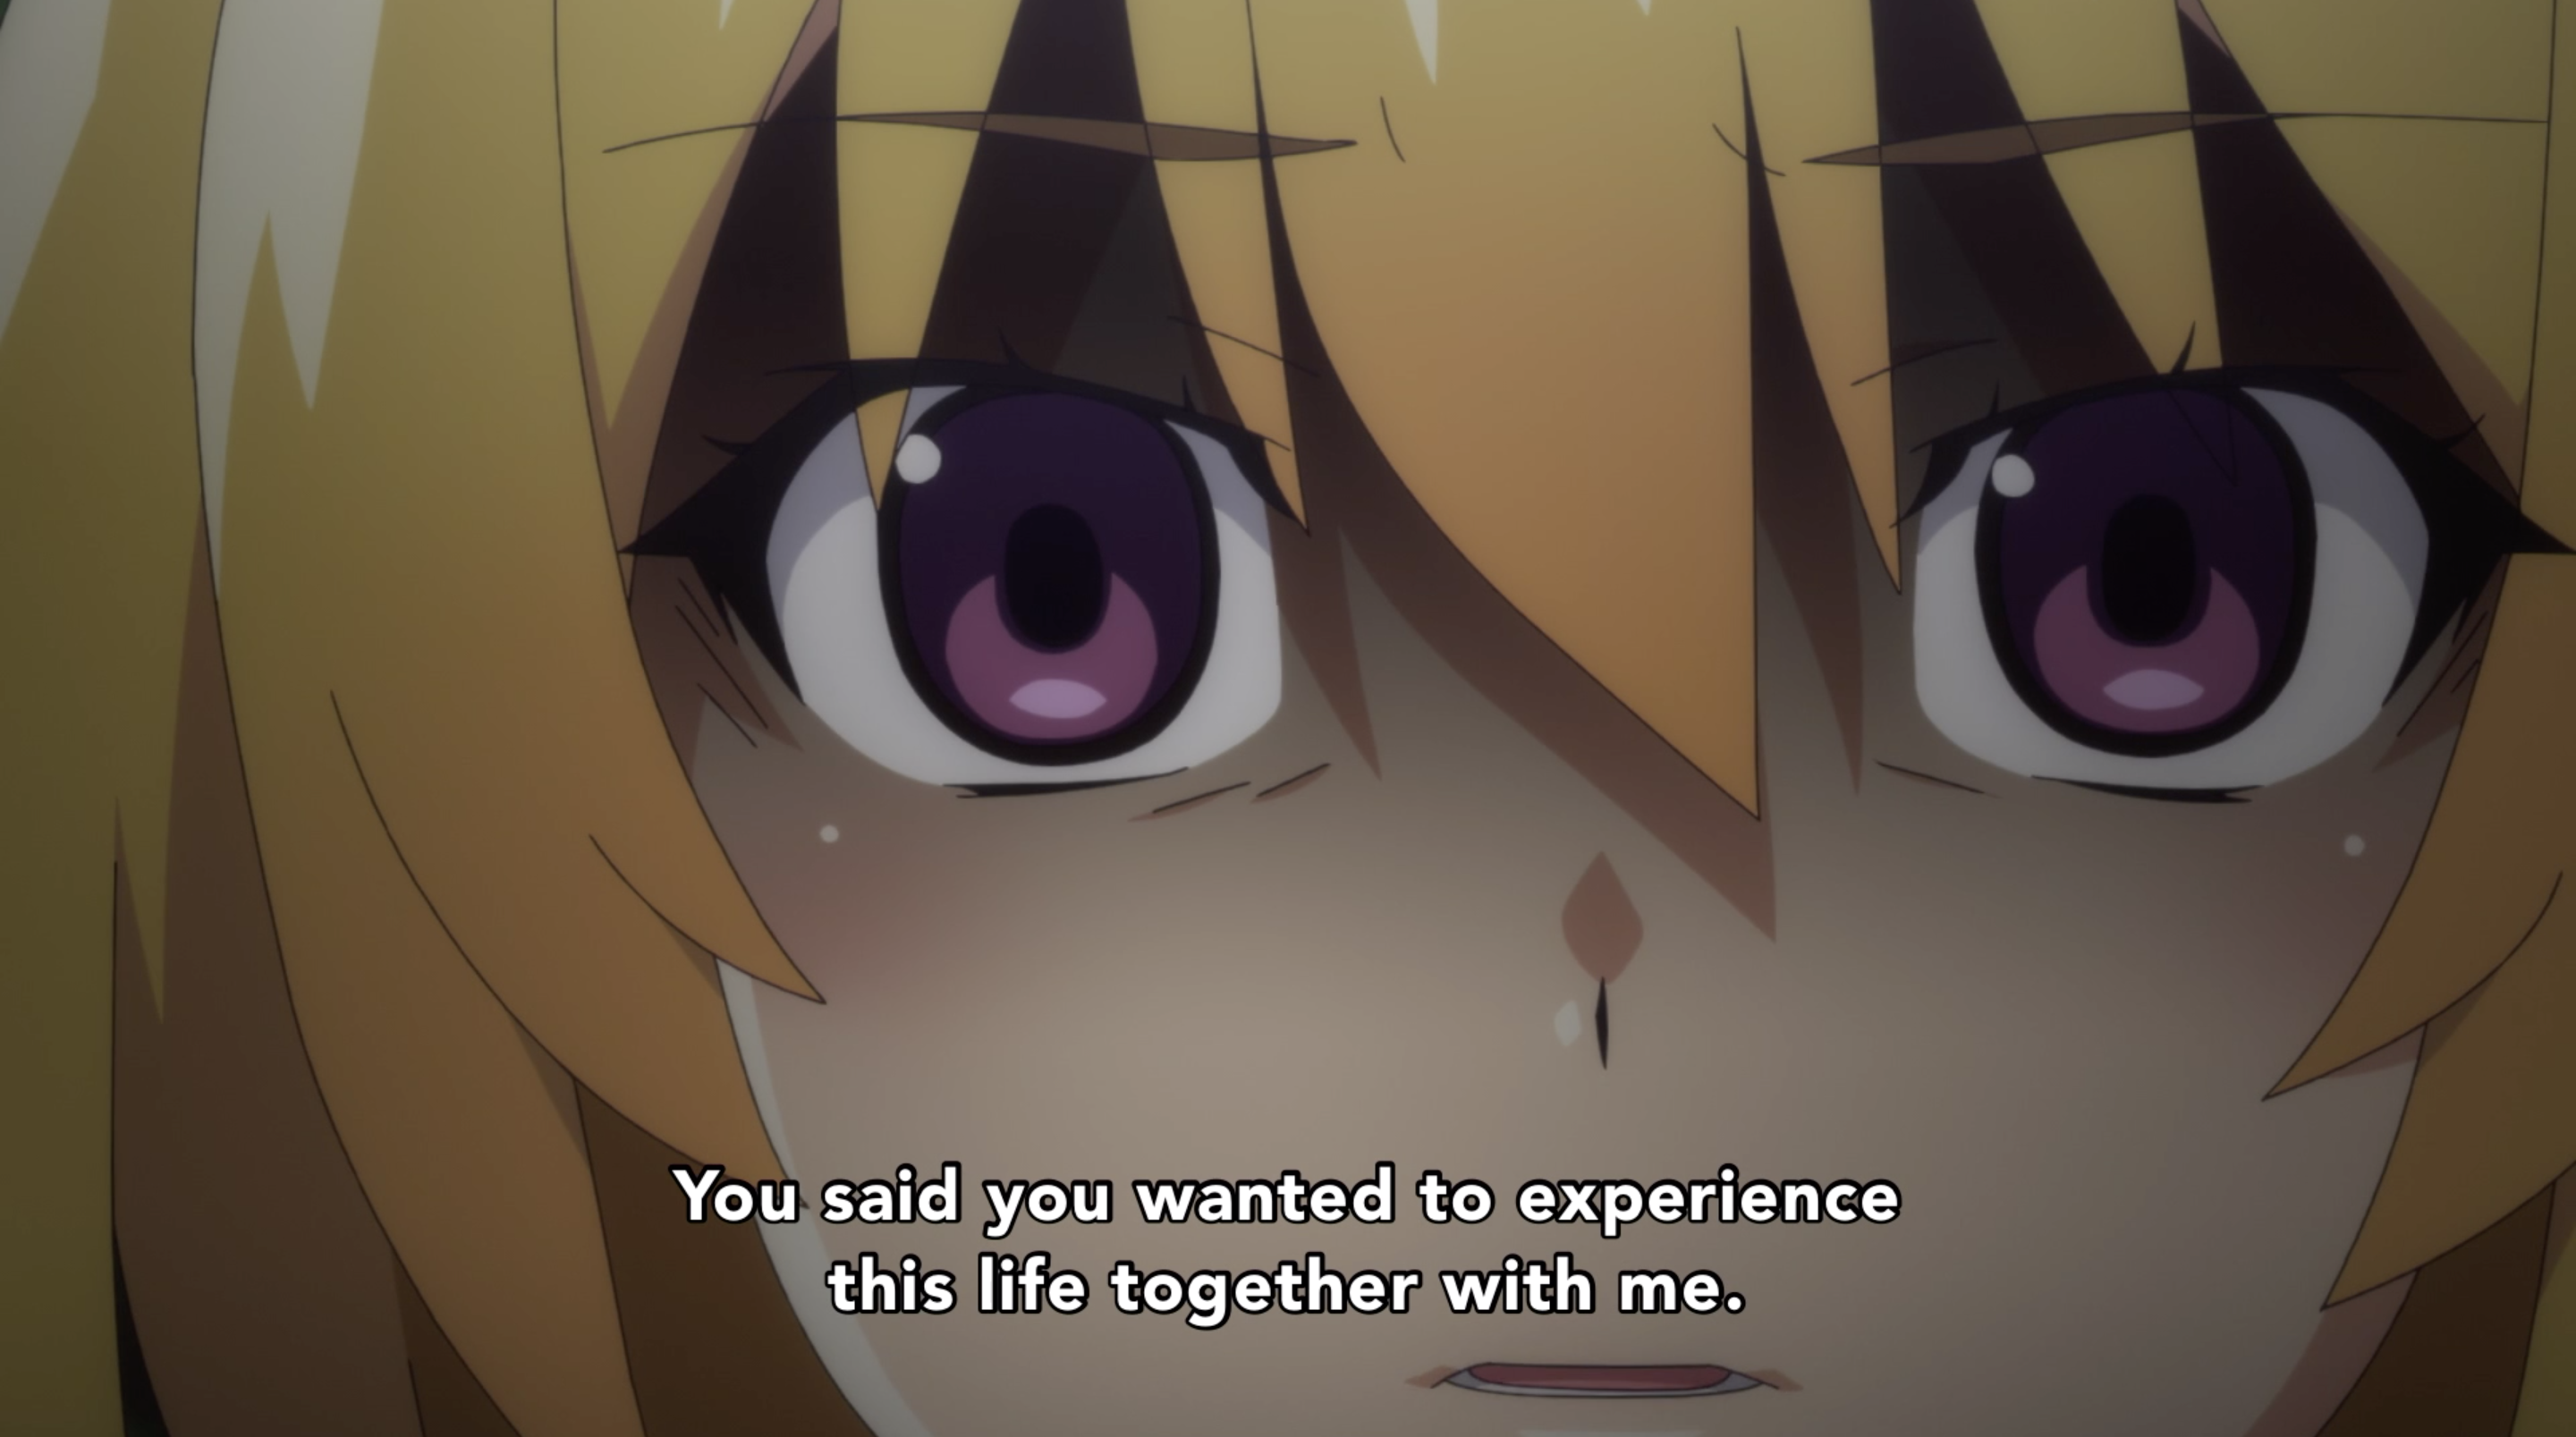 Higurashi Gou Episode 19 review